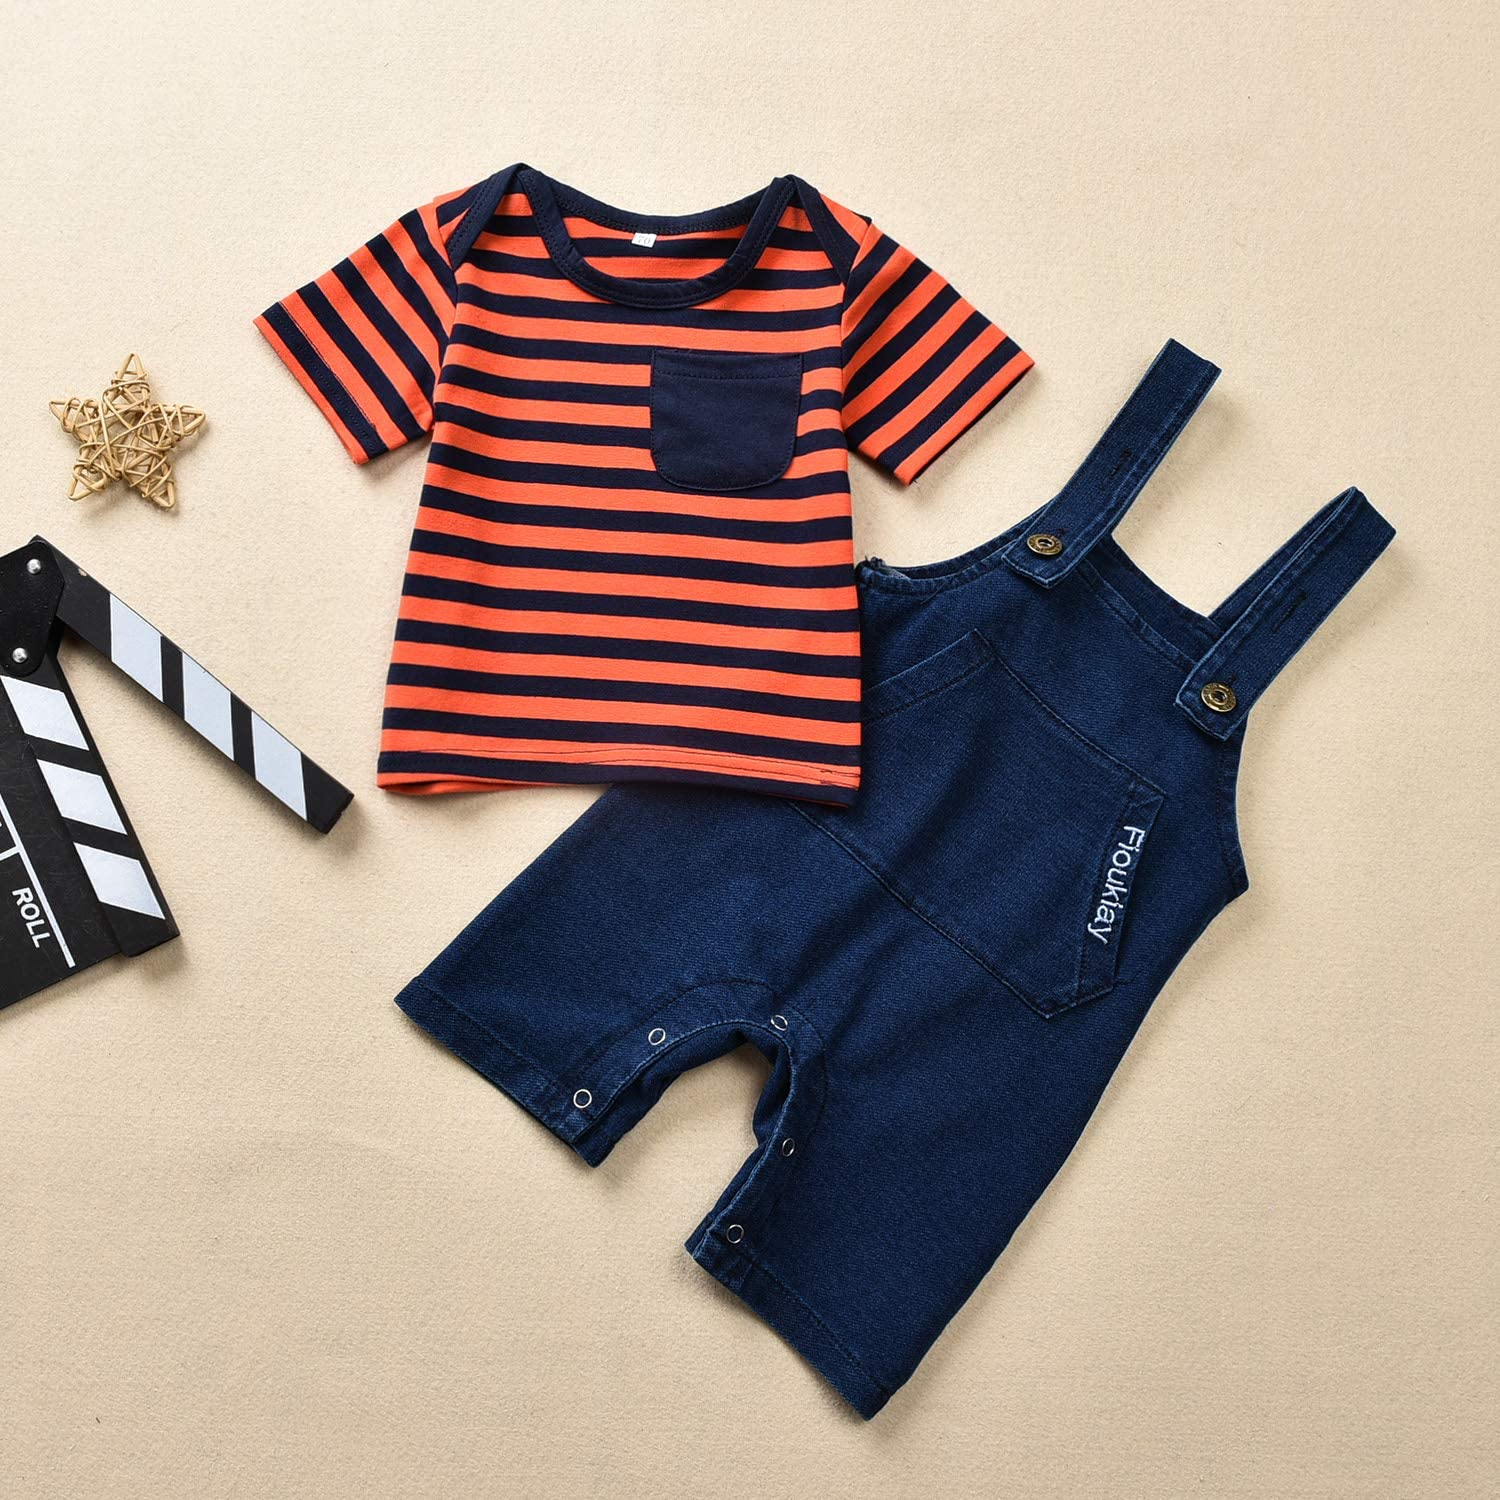 Baby Toddler Overalls Unisex Newborn Romper Outfit Sets for Boys and Girls